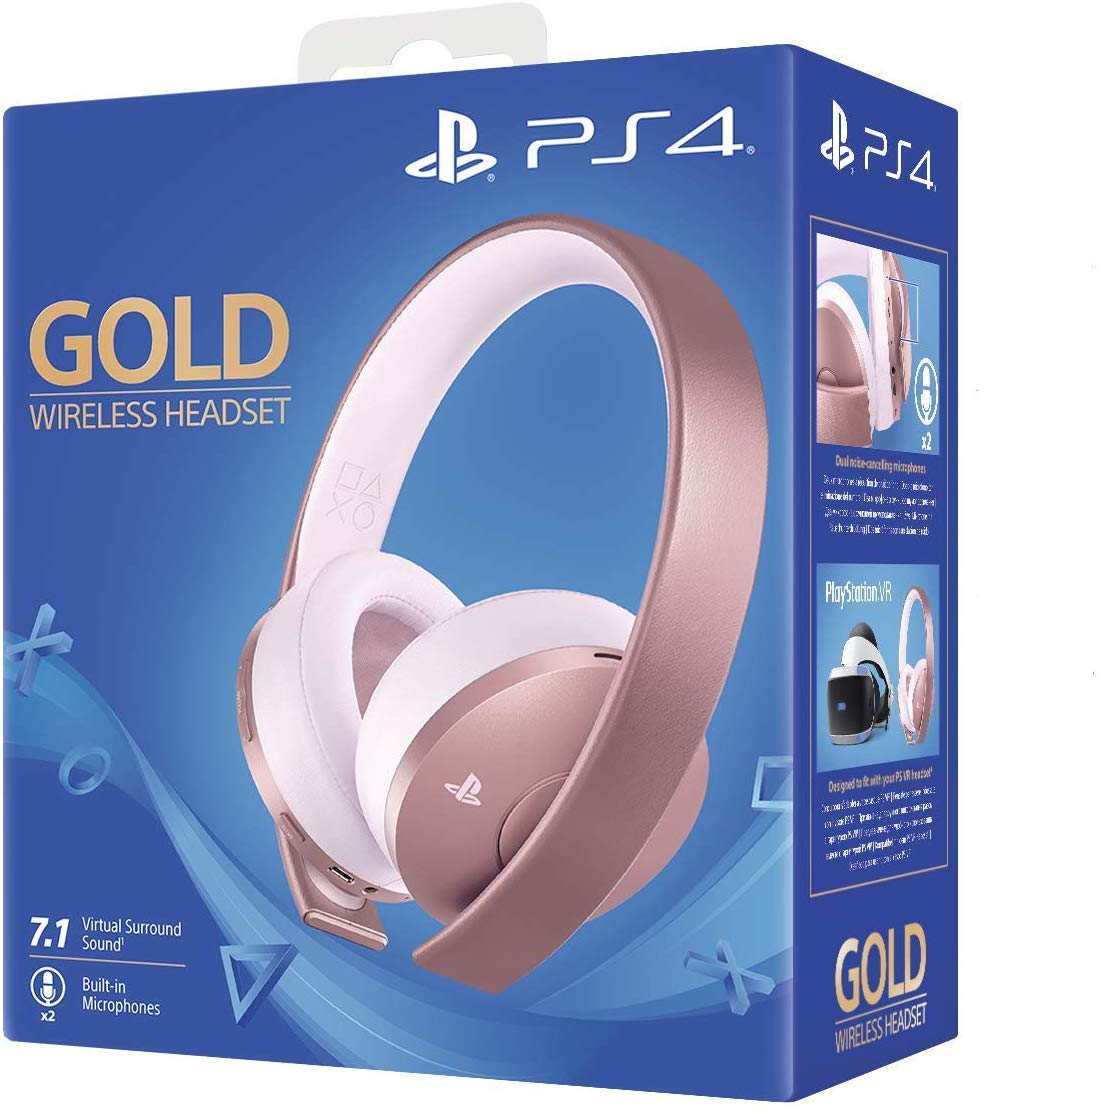 Ps4 Gold Wireless Headset Rose Gold Gaming Headsets Gaming Headsets For Ps4 Xbox Pc Mac